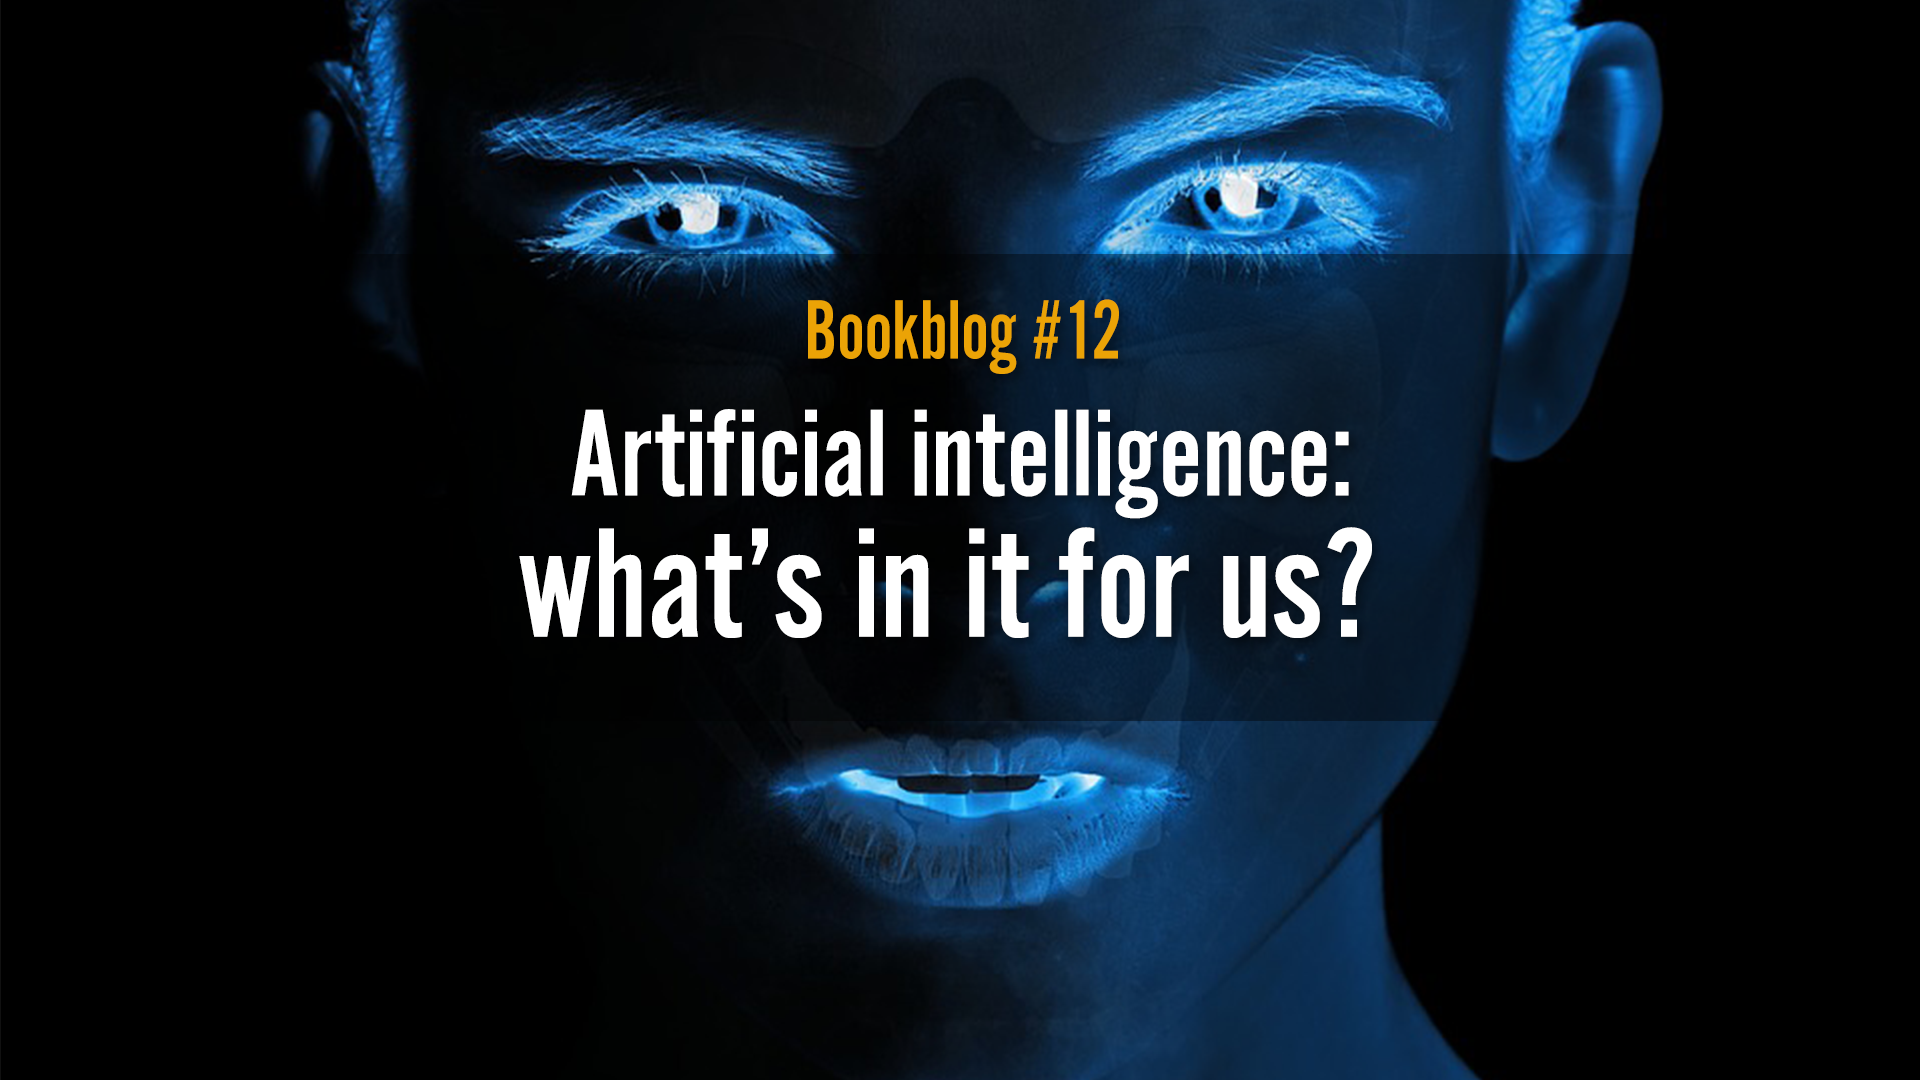 Artificial intelligence: what's in it for us?